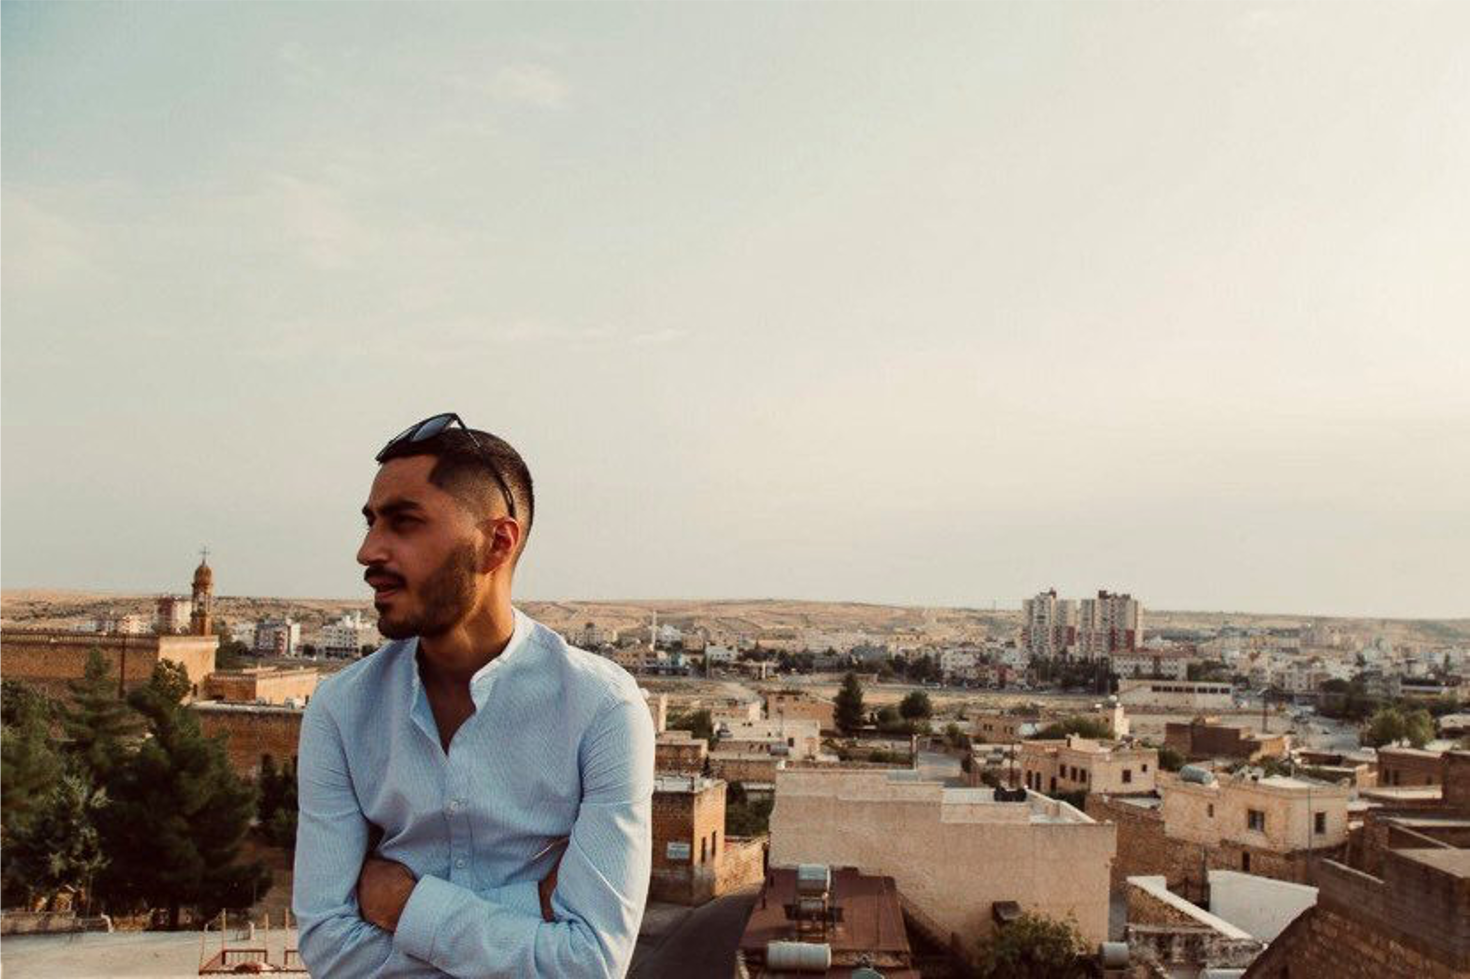 © Louis Delbarre: Alexandro in Midyat, Turkey, at the beginning of his trip